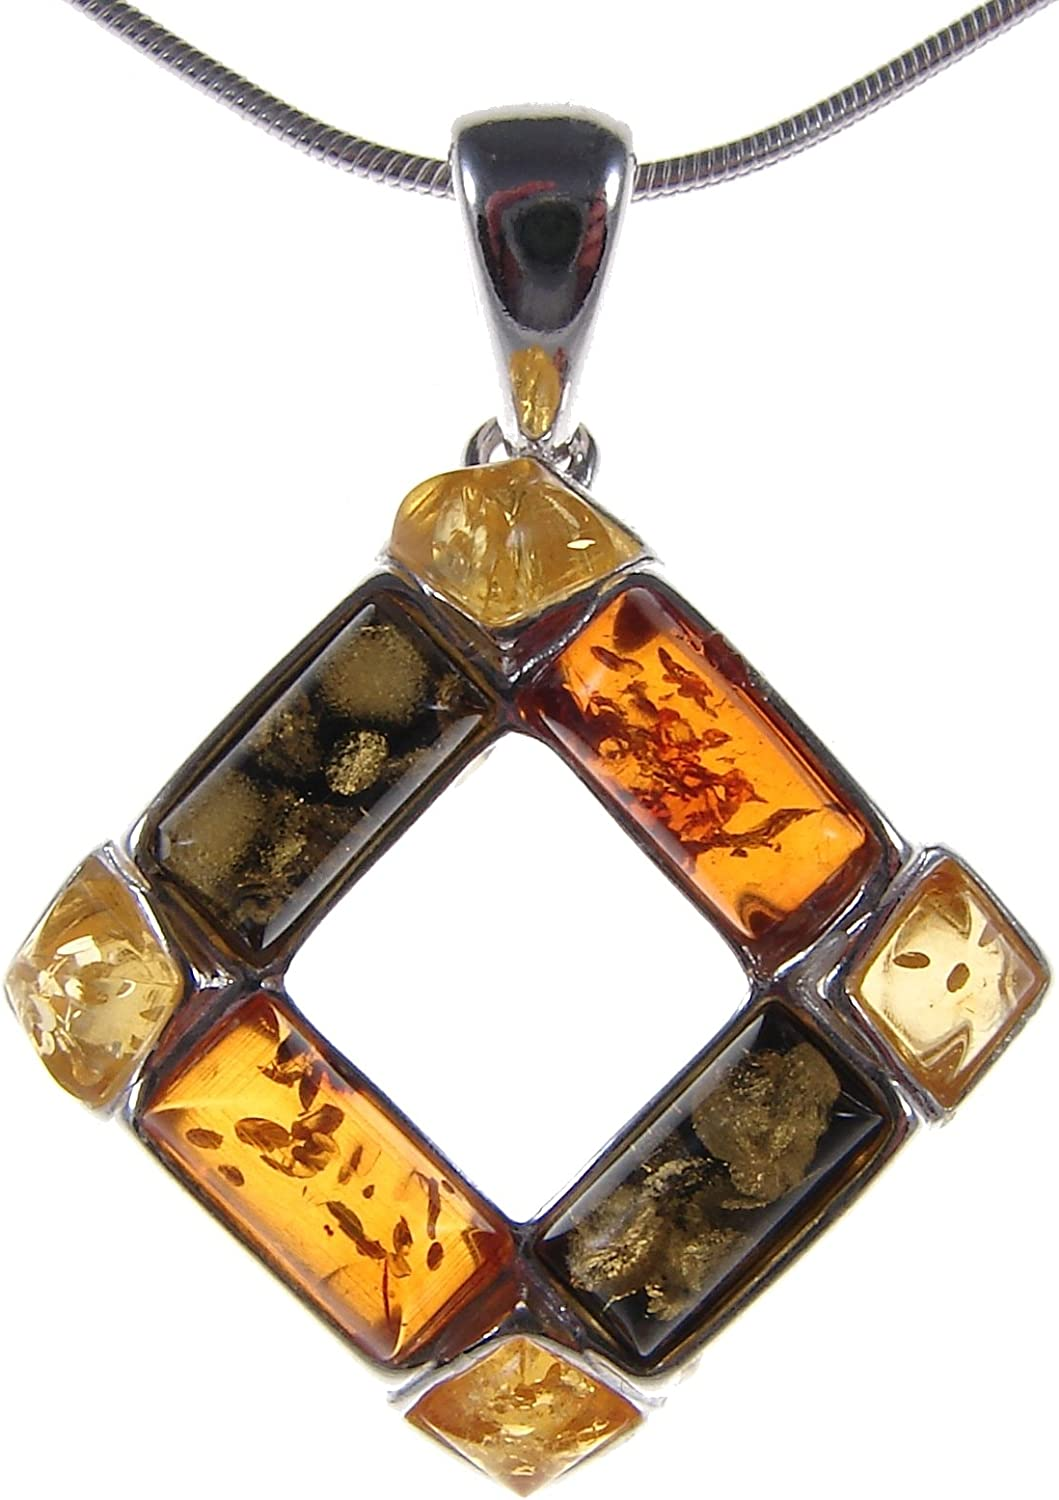 BALTIC AMBER AND STERLING SILVER 925 PENDANT NECKLACE 10 12 14 16 18 20 22 24 26 28 30 32 34 36 38 40 1mm ITALIAN SNAKE CHAIN